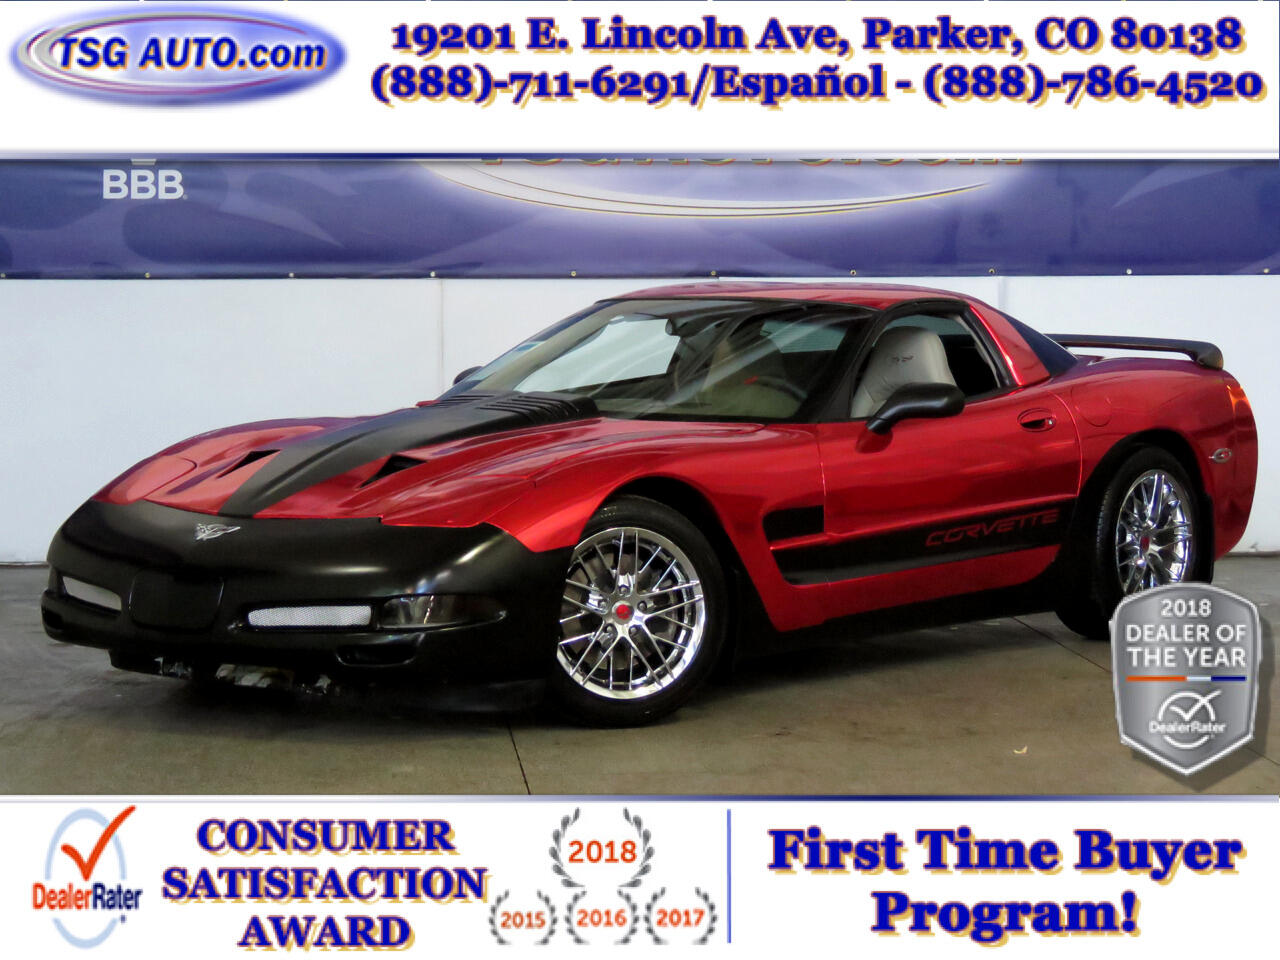 2003 Chevrolet Corvette 50th Anniversary Edition 5.7L V8